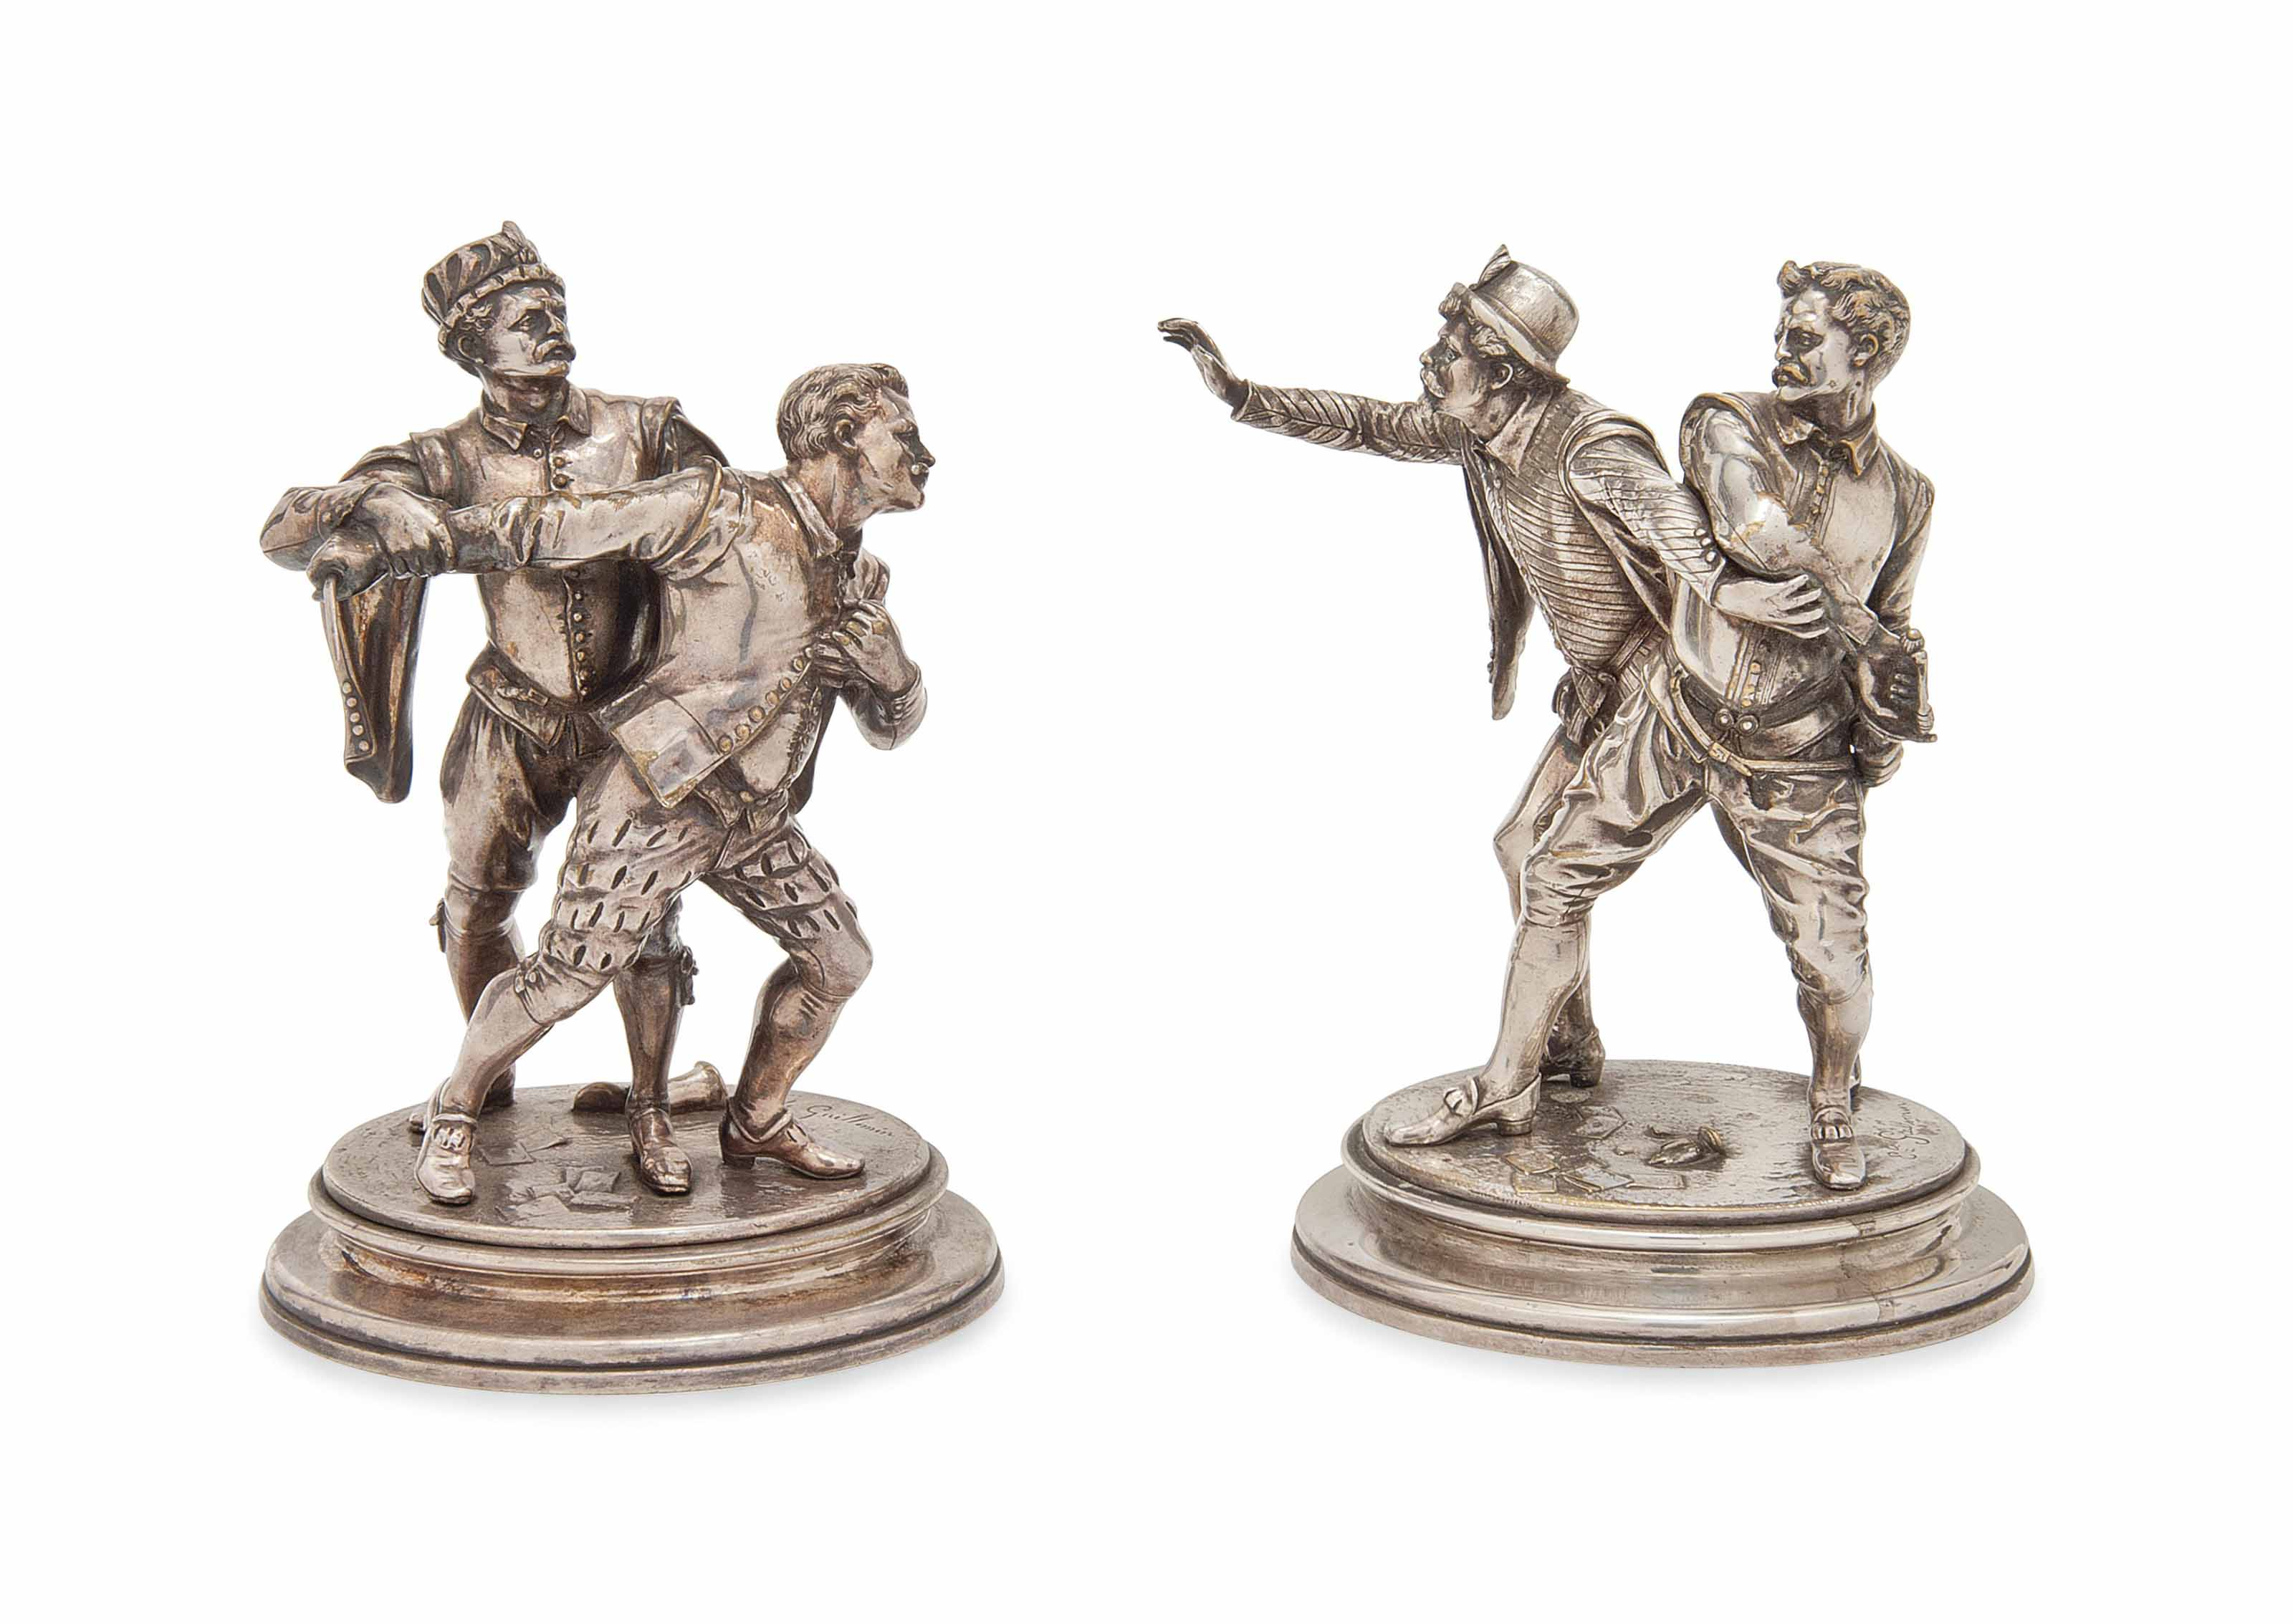 A PAIR OF FRENCH SILVERED BRONZE FIGURAL GROUPS